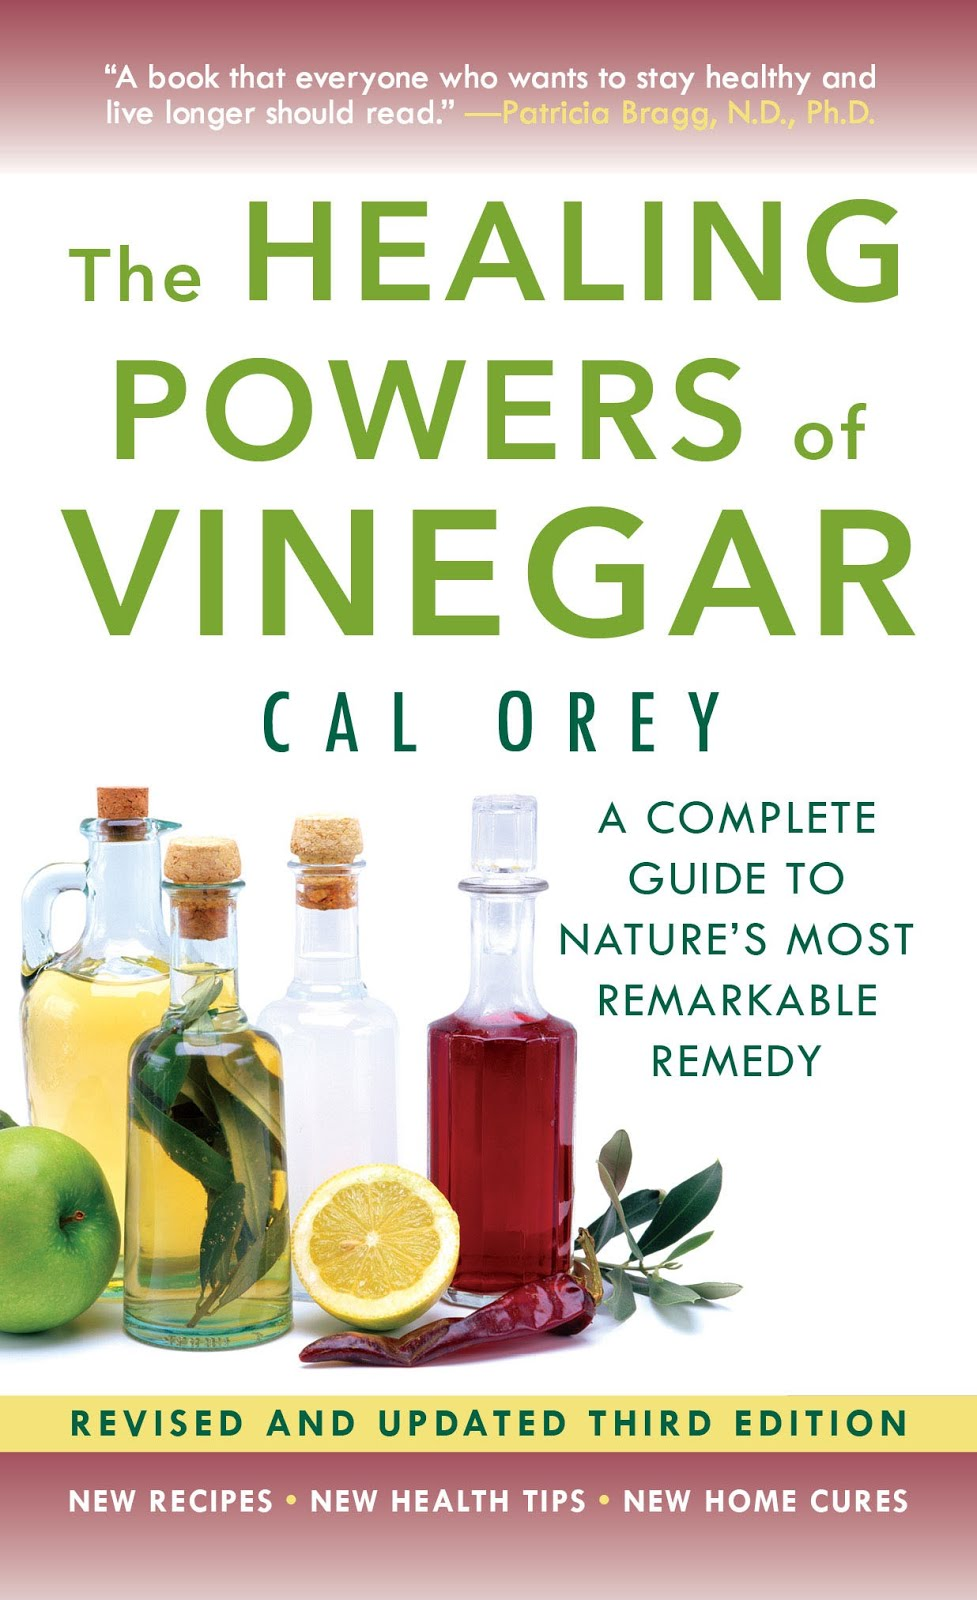 VINEGAR, Gift Size Coming Soon!